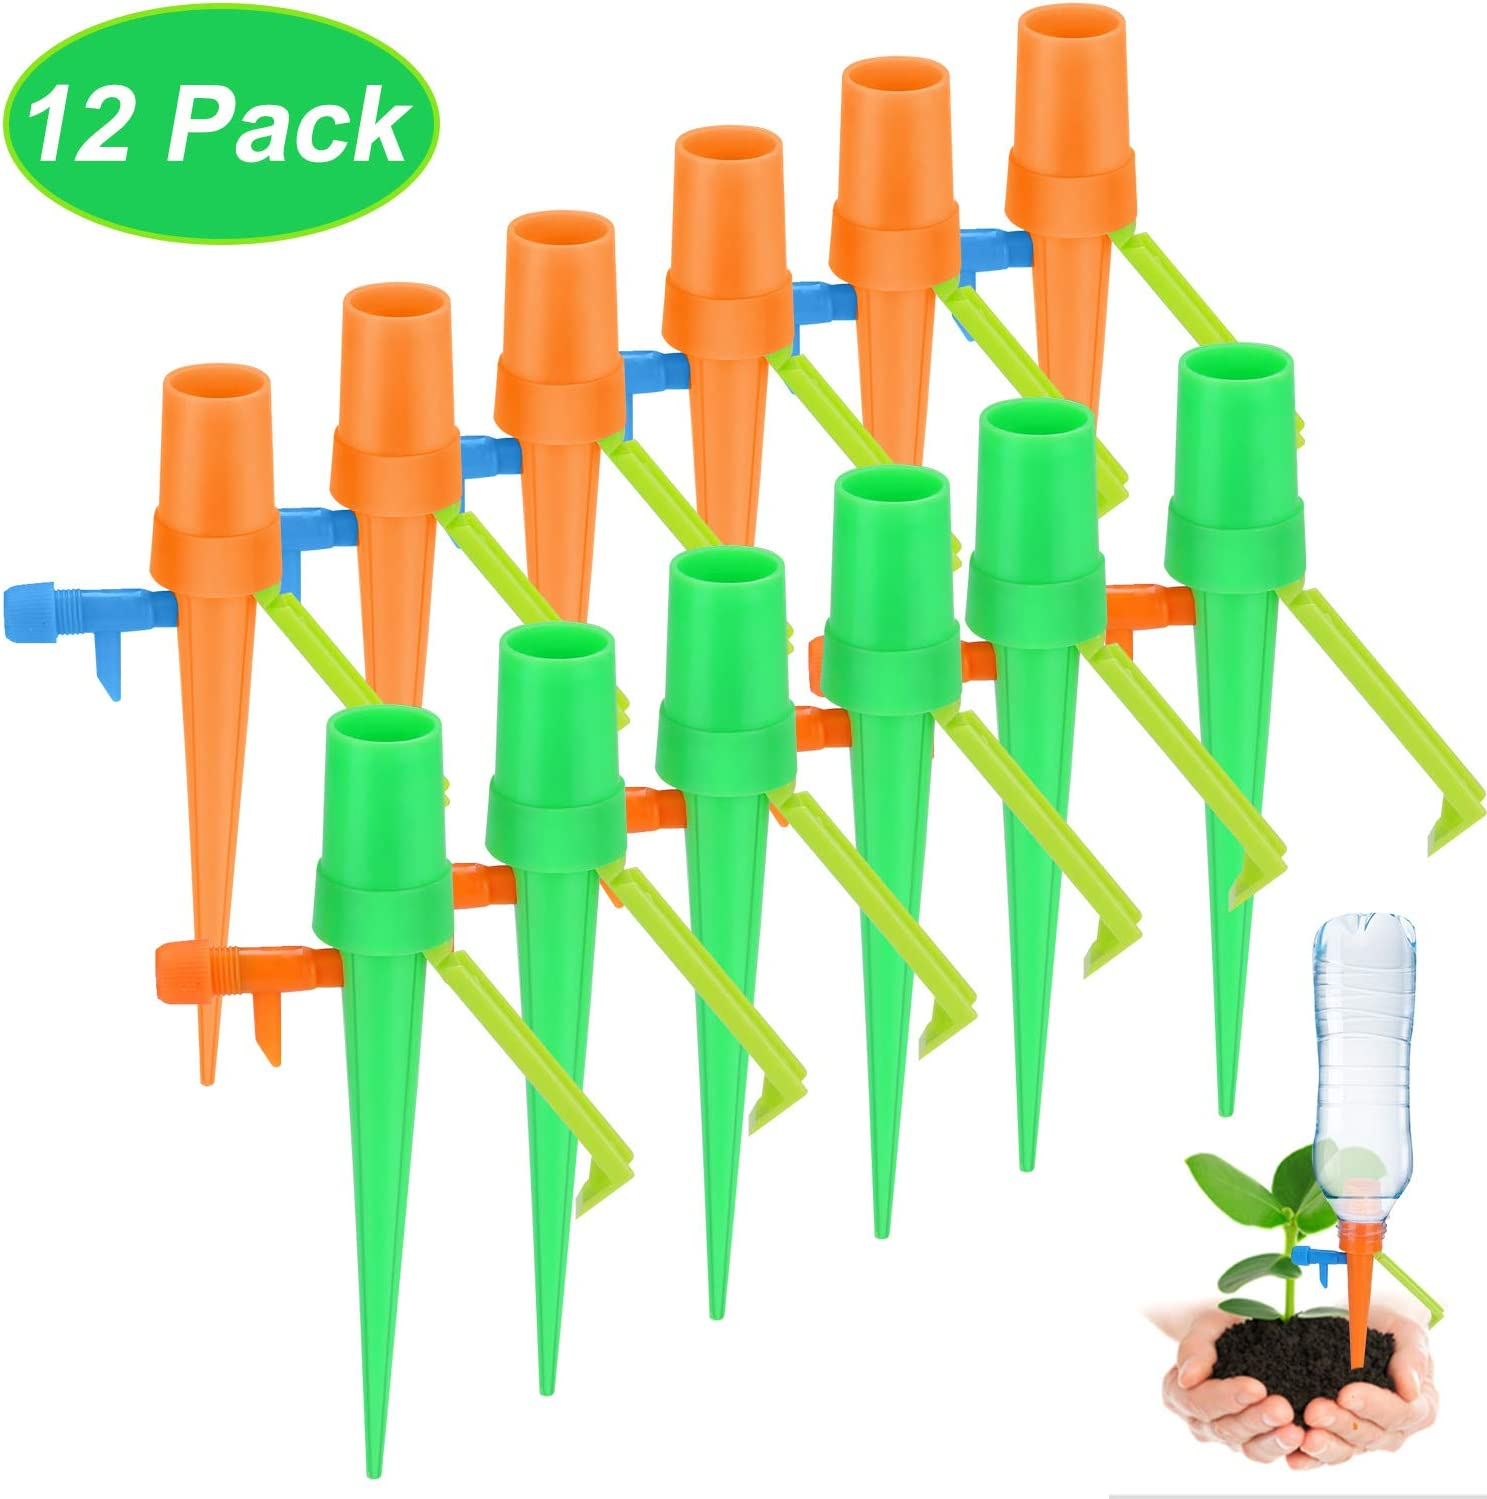 F&T Upgraded Version Plant Watering Devices Plant Self Watering Spikes with Valve Control Switch & Anti-tilt Bracket Suitable for Outdoor IndoorPotted Plant Flower(12 Pcs)